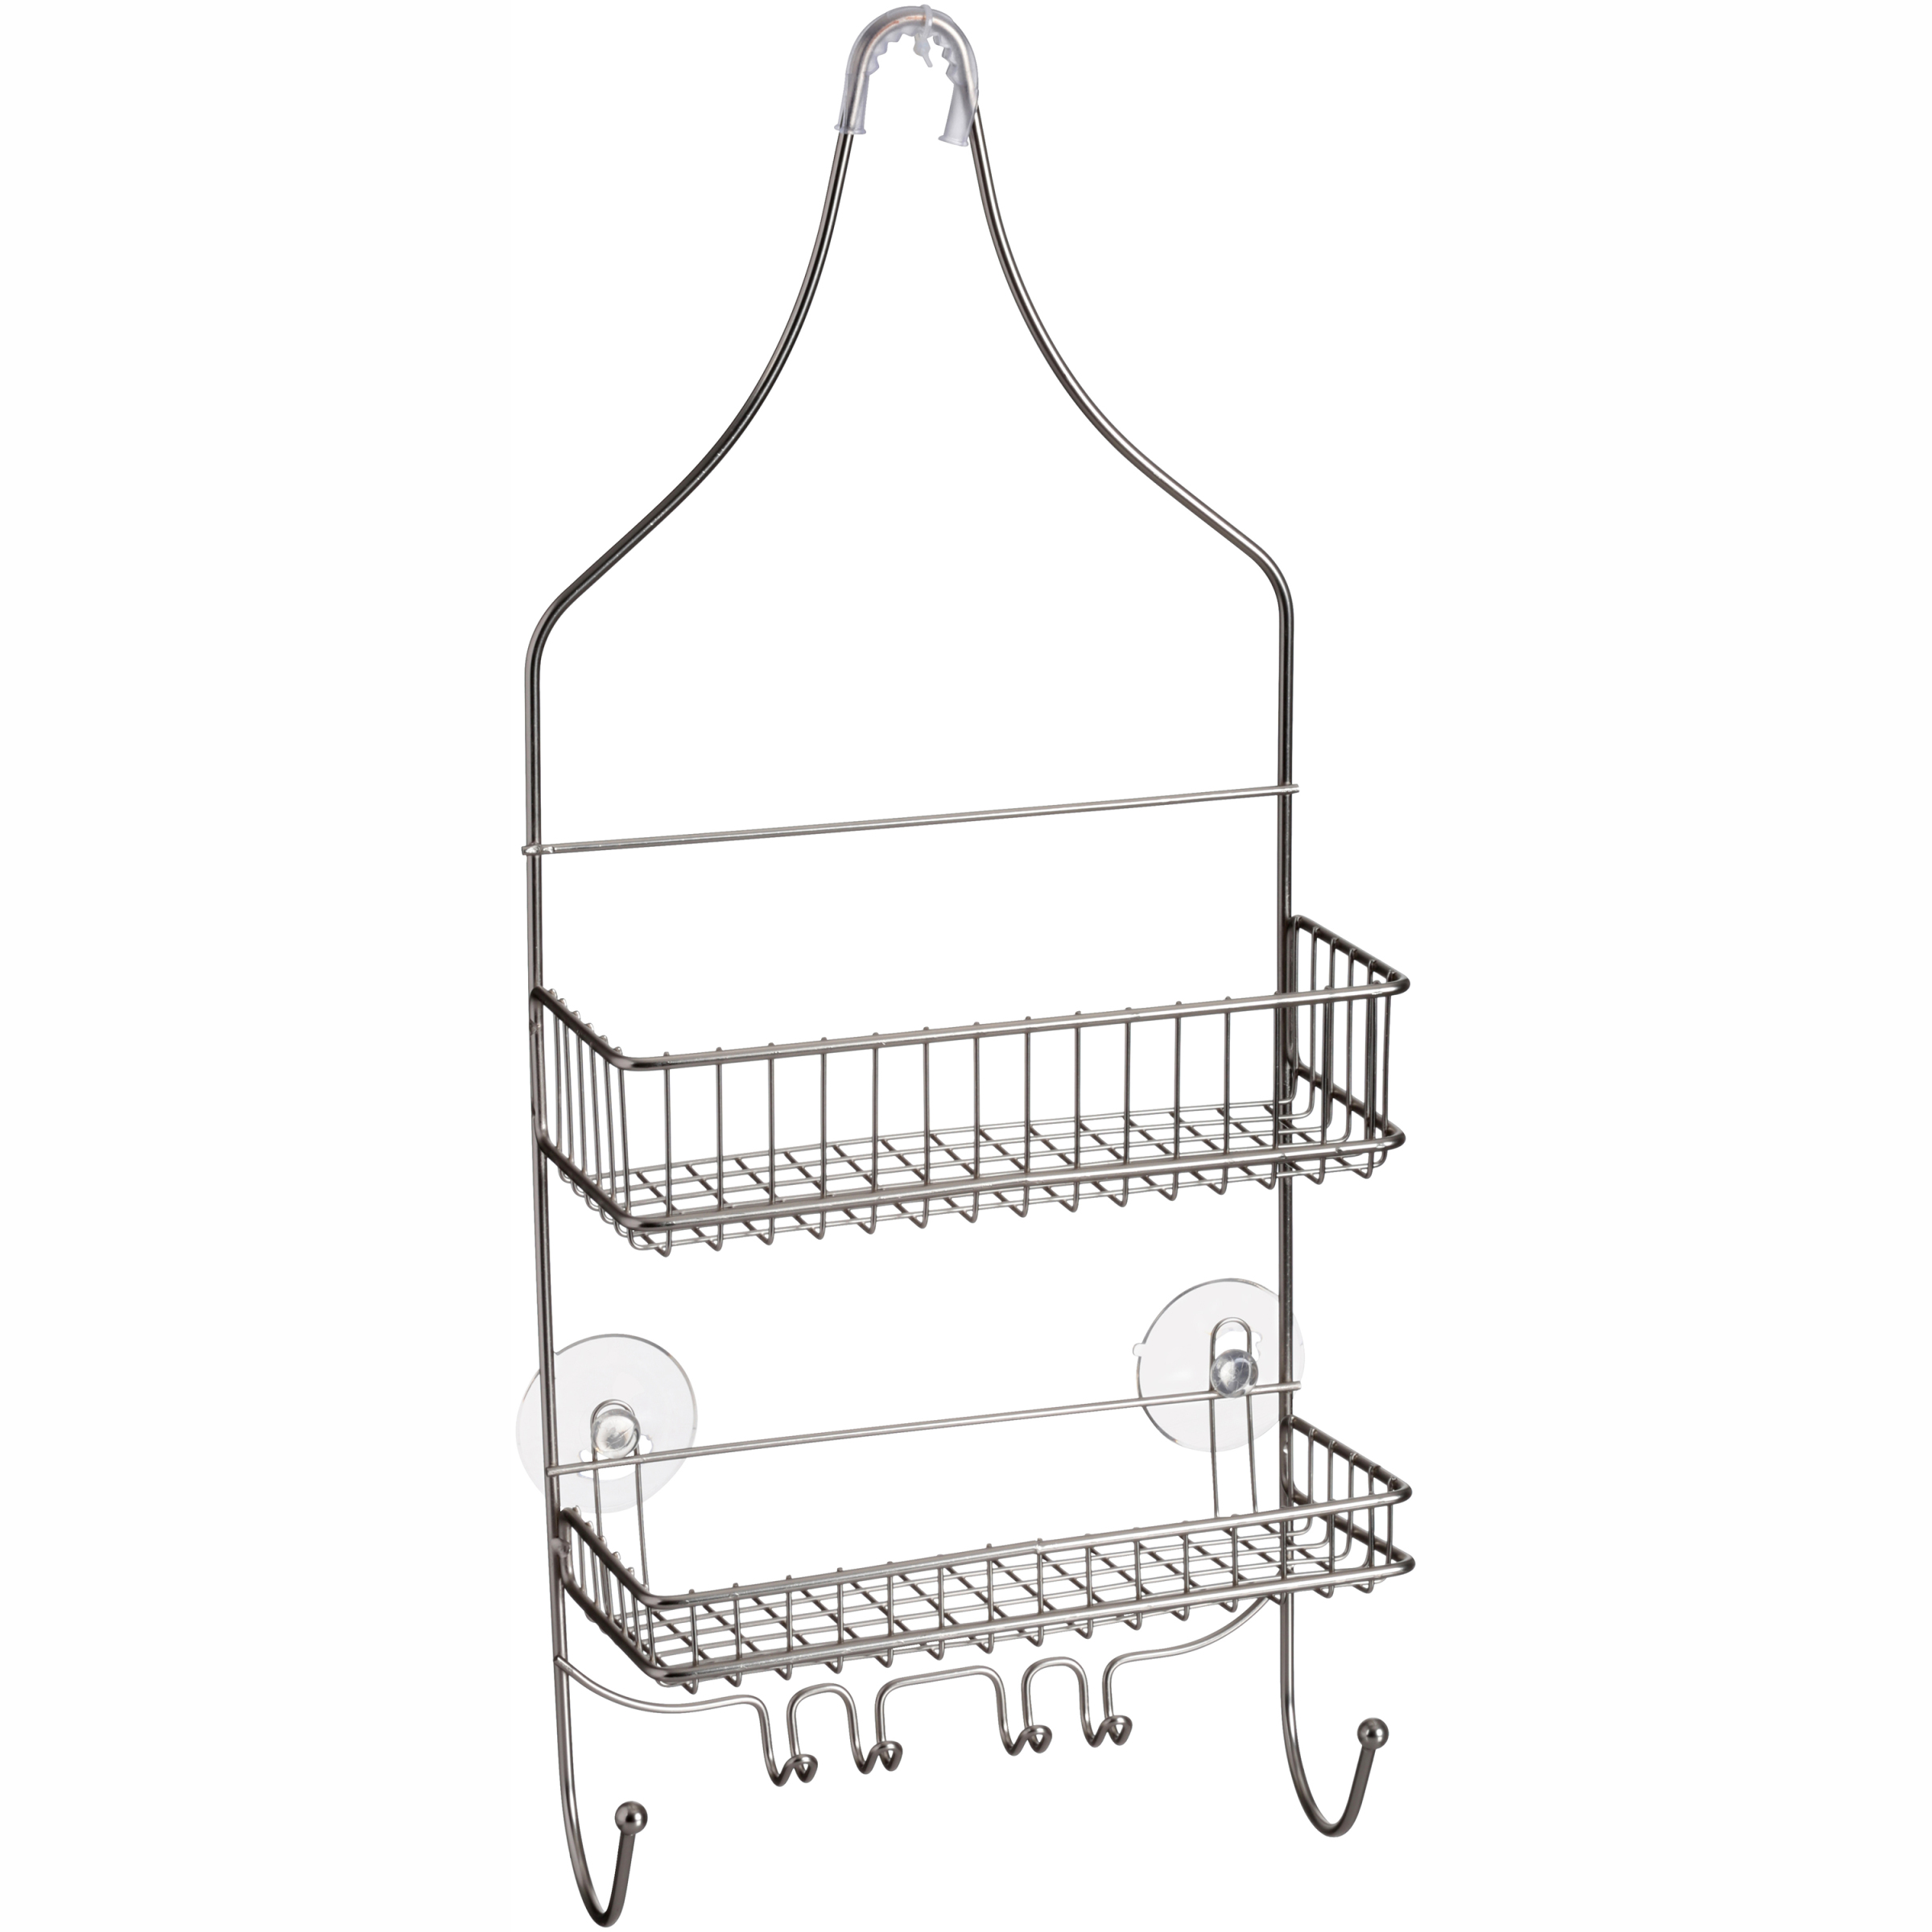 Home Collections Bath Series Nickel Shower Caddy by Home Expressions, Inc.